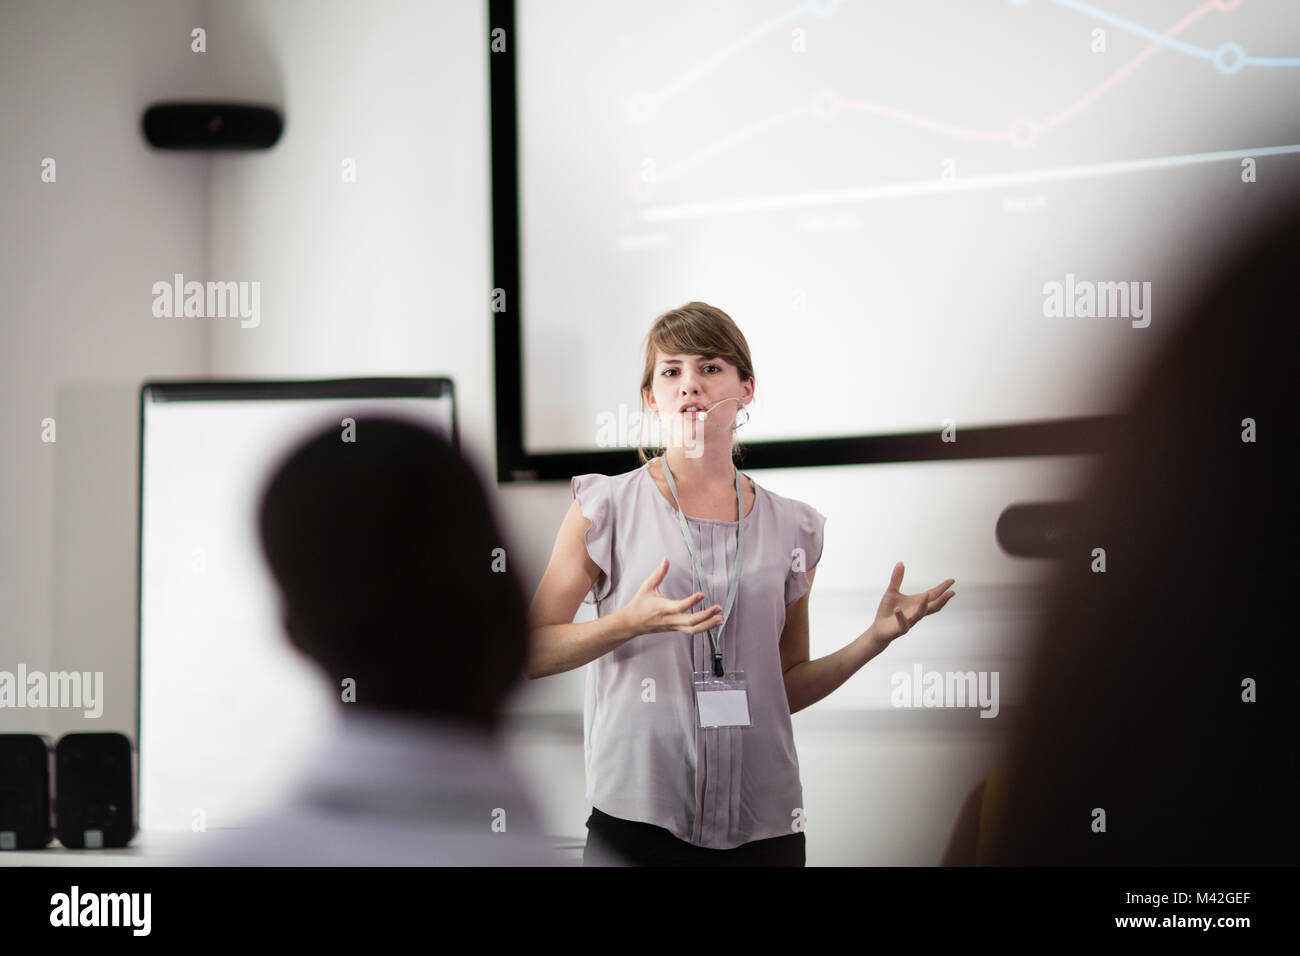 Young female executive speaking at a conference - Stock Image